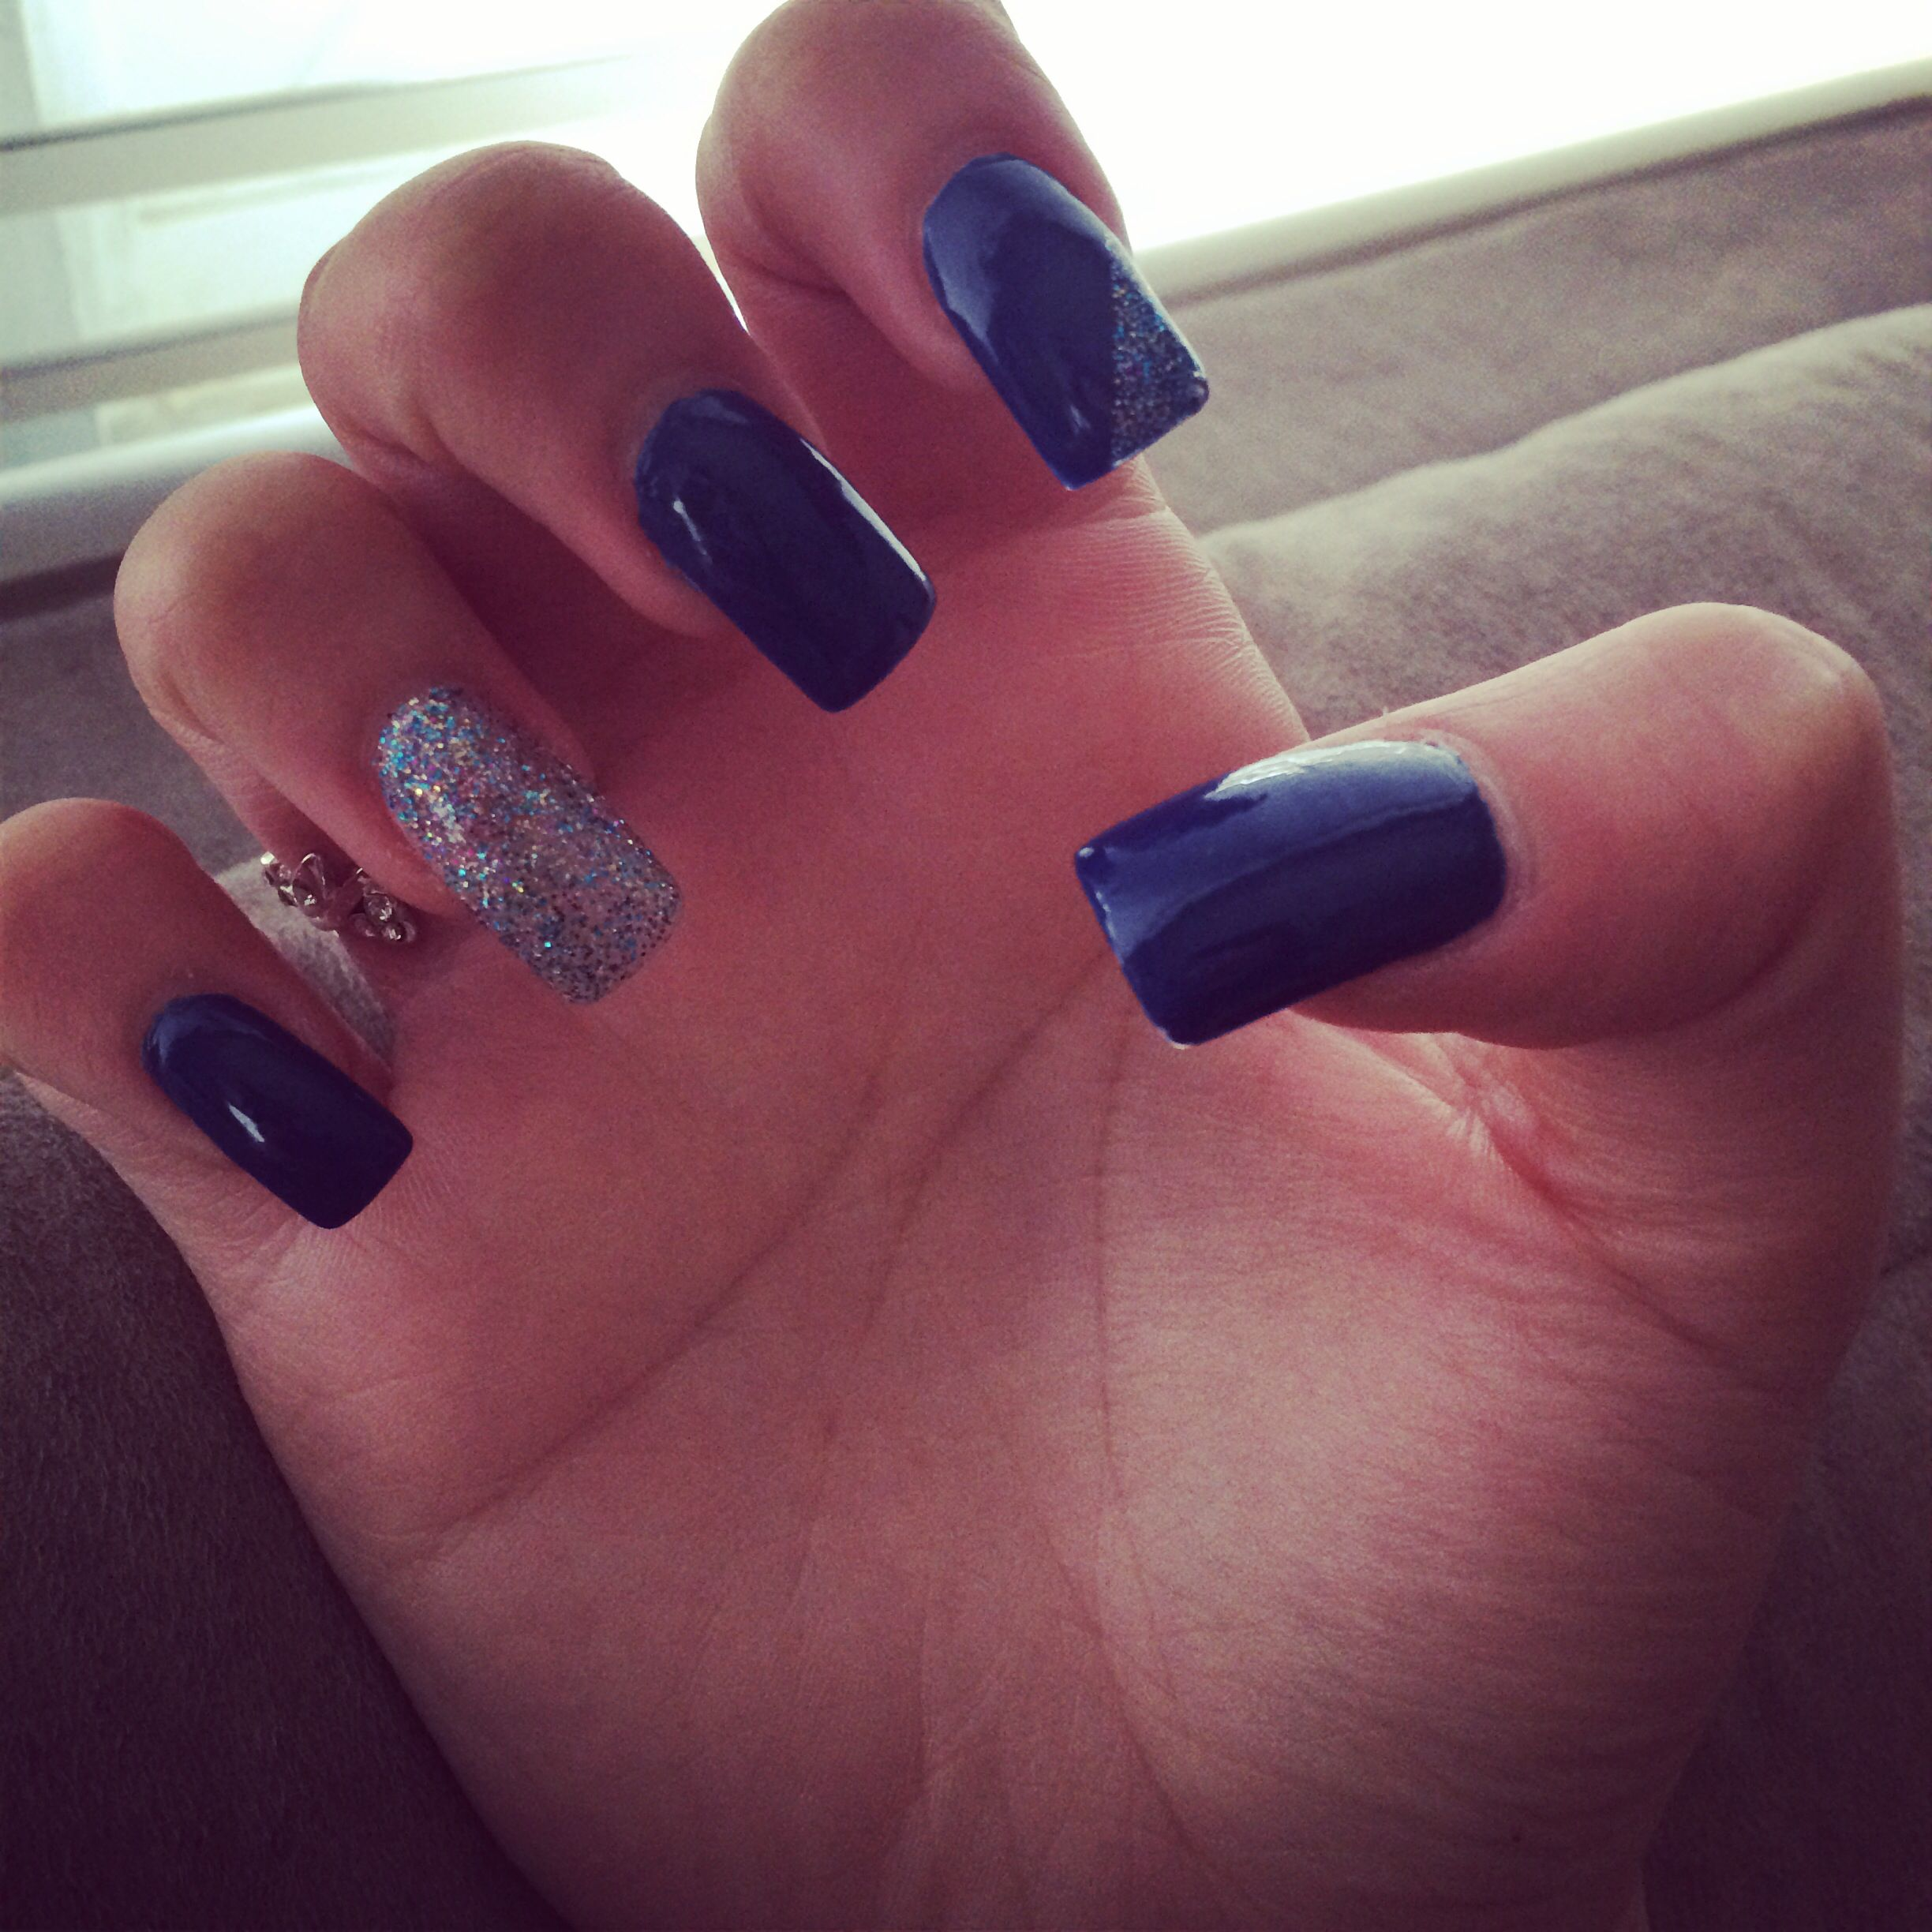 Navy blue nails #Prom Nails | My nails | Pinterest | Navy blue nails ...